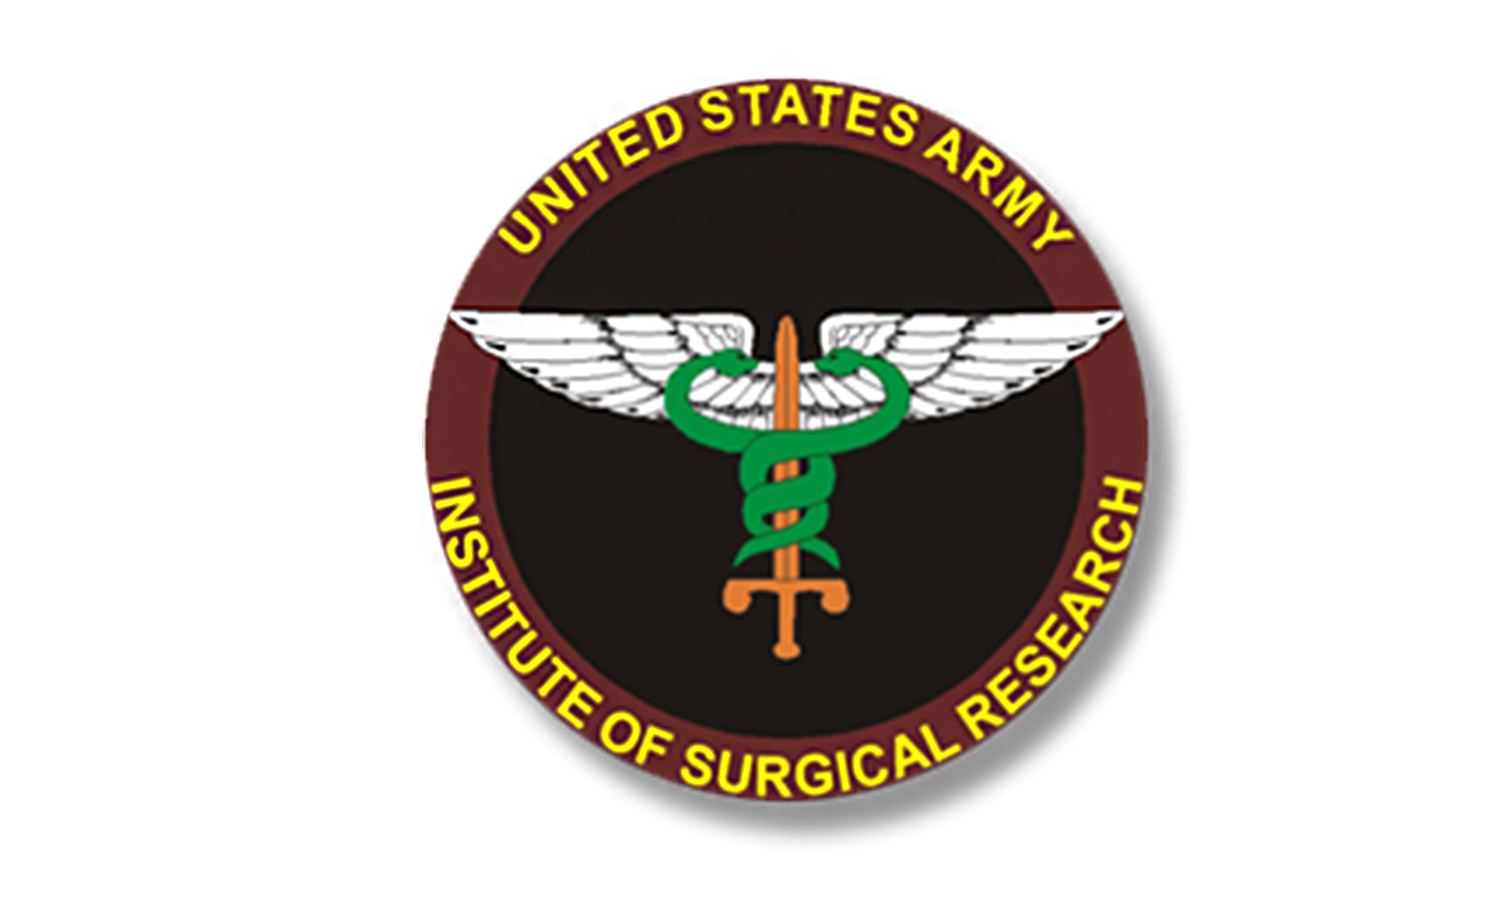 USA Army Institute of Surgical Research (ISR)